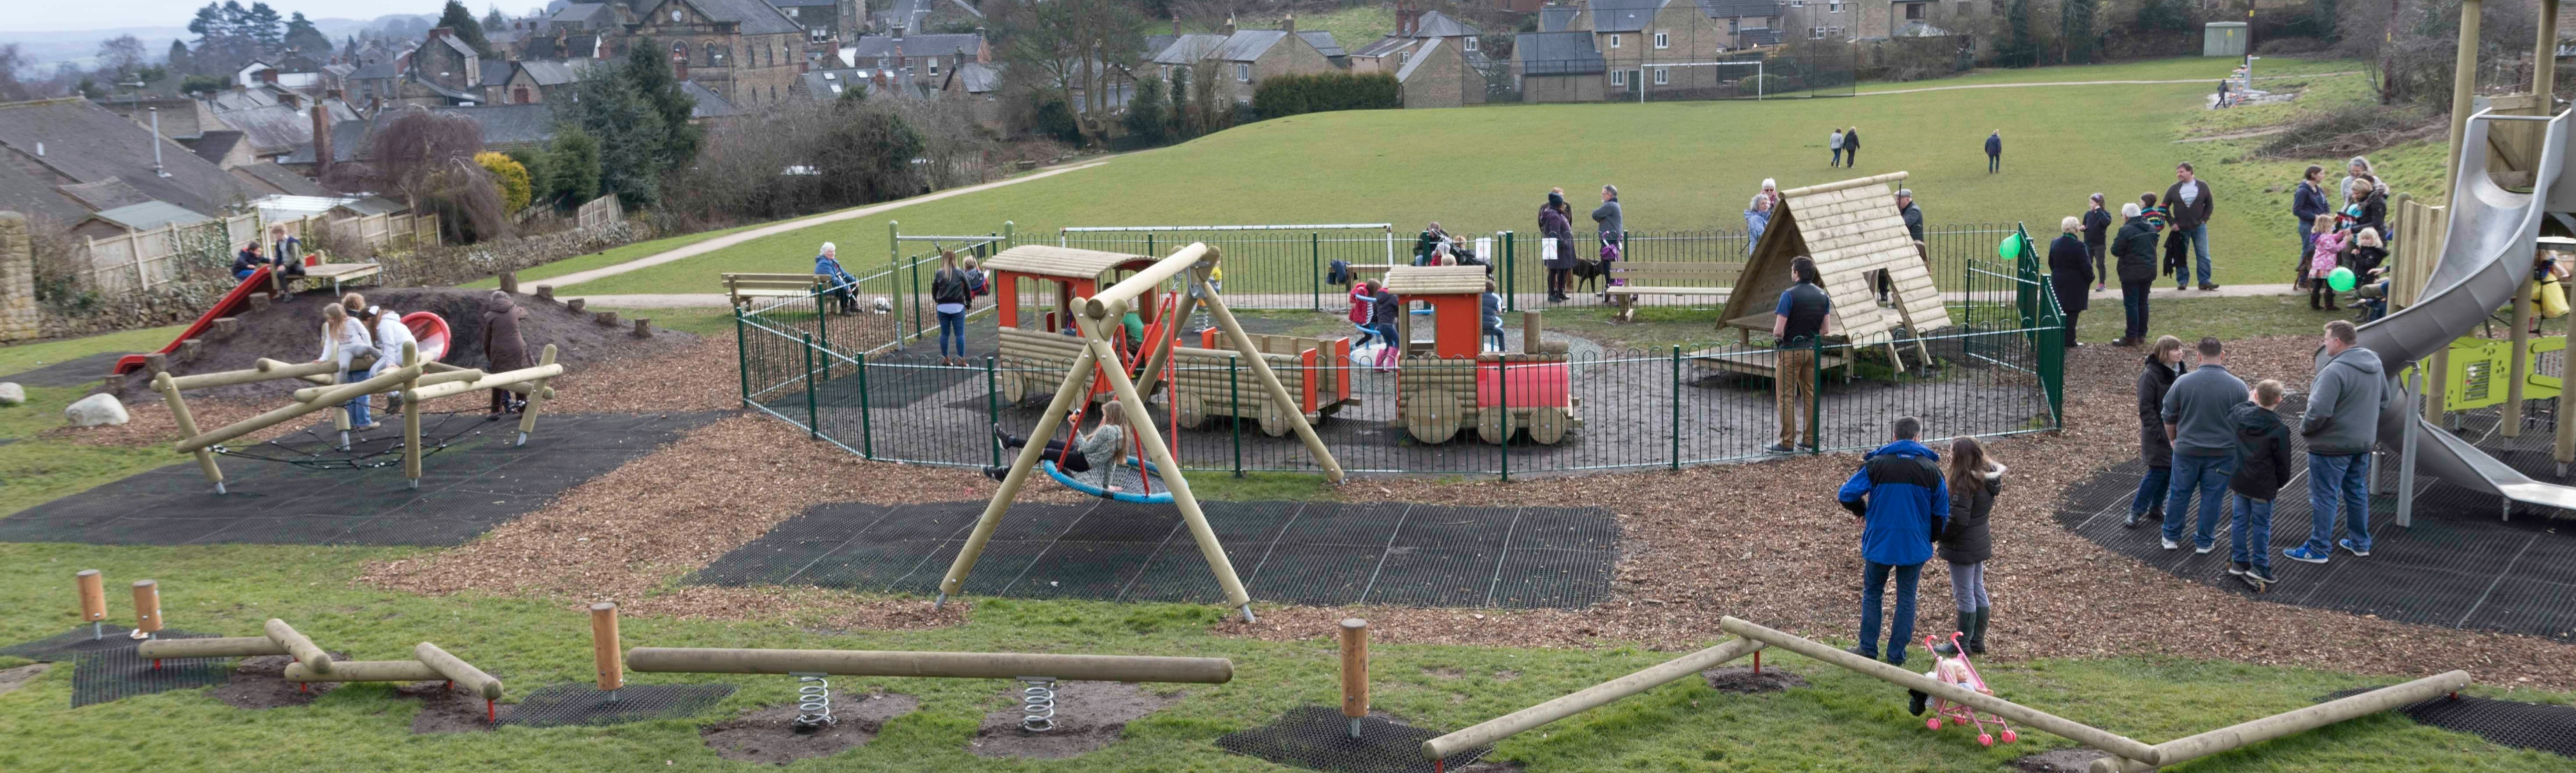 New play area on the Crich Recreation Ground thanks to Place Project